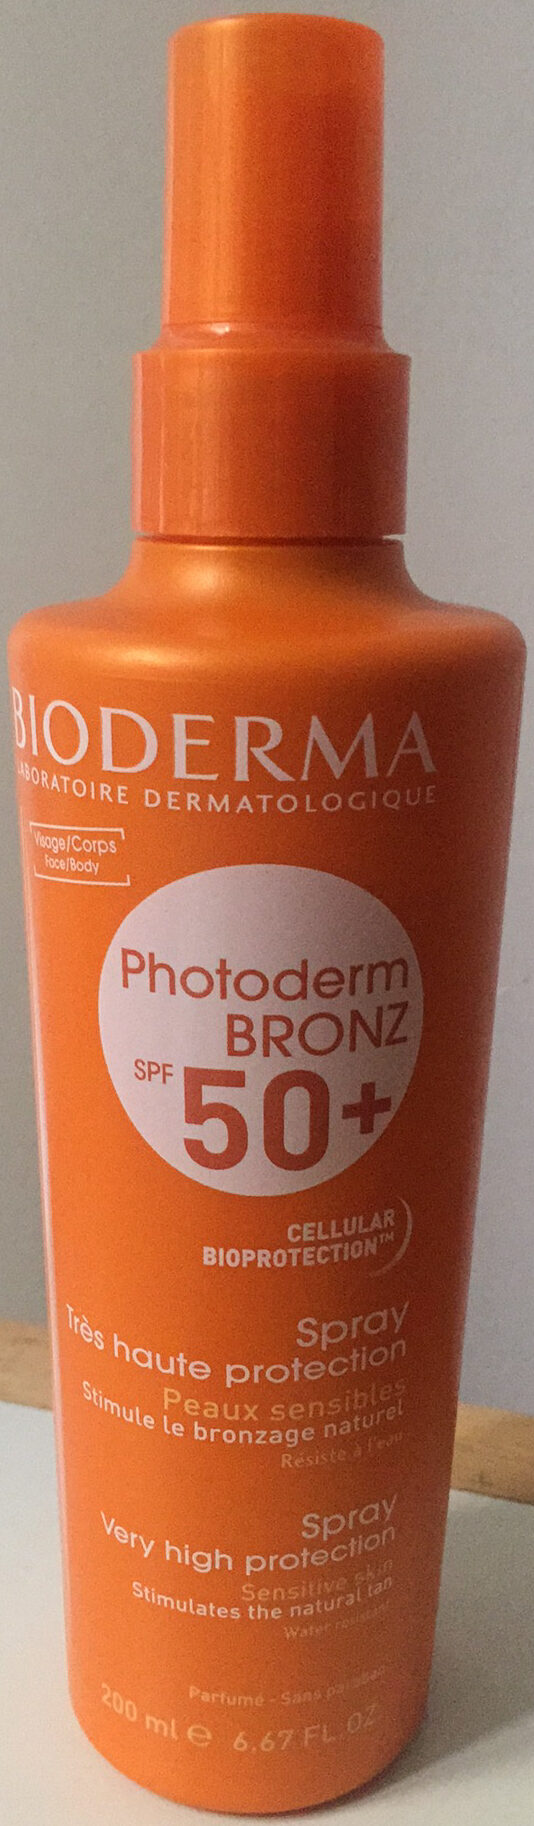 Photoderm Bronz SPF 50+ - Product - fr